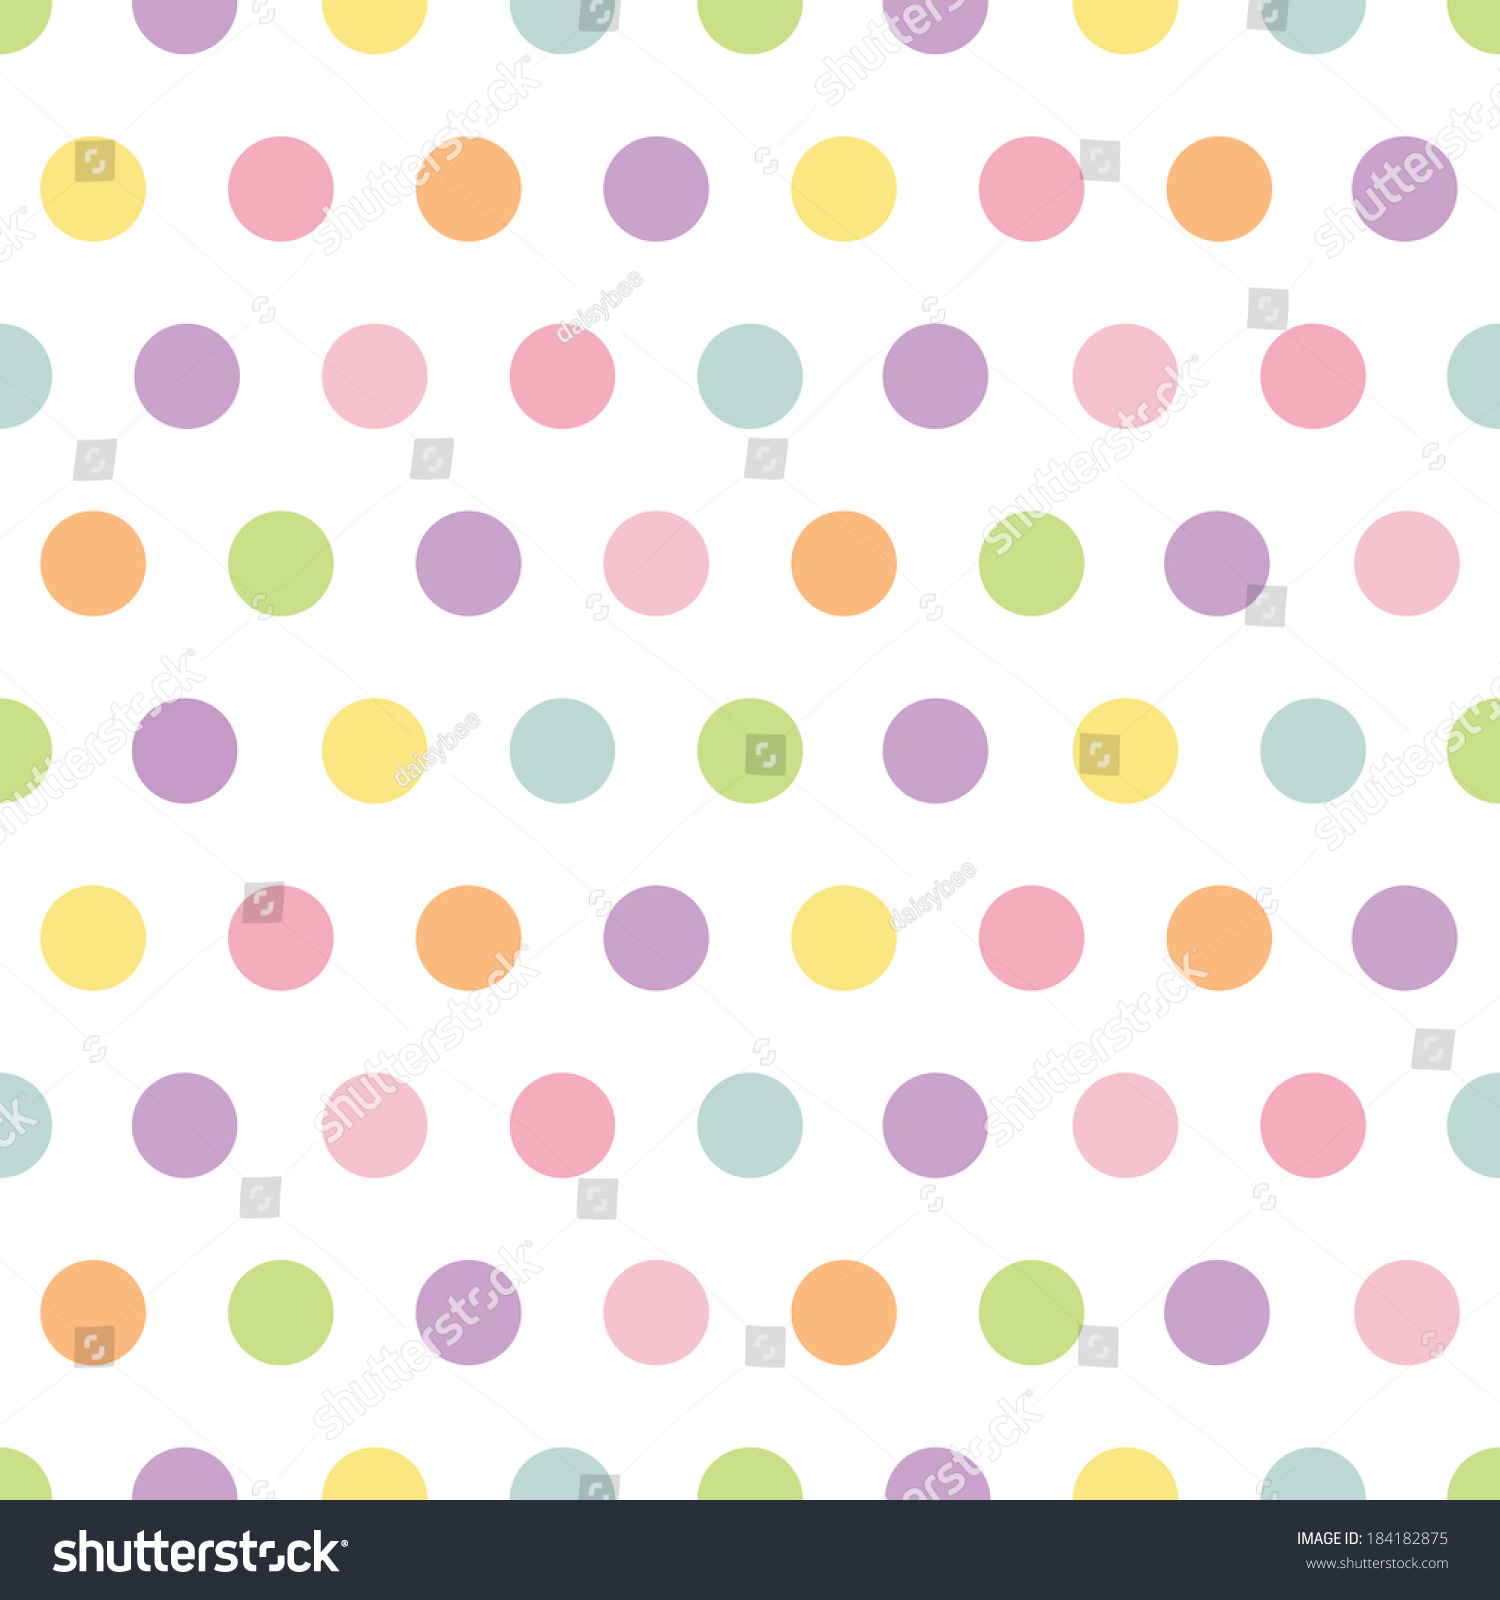 Cute seamless retro polka dots pattern stock illustration cute seamless retro polka dots pattern in spring colors for baby mothers day easter negle Image collections